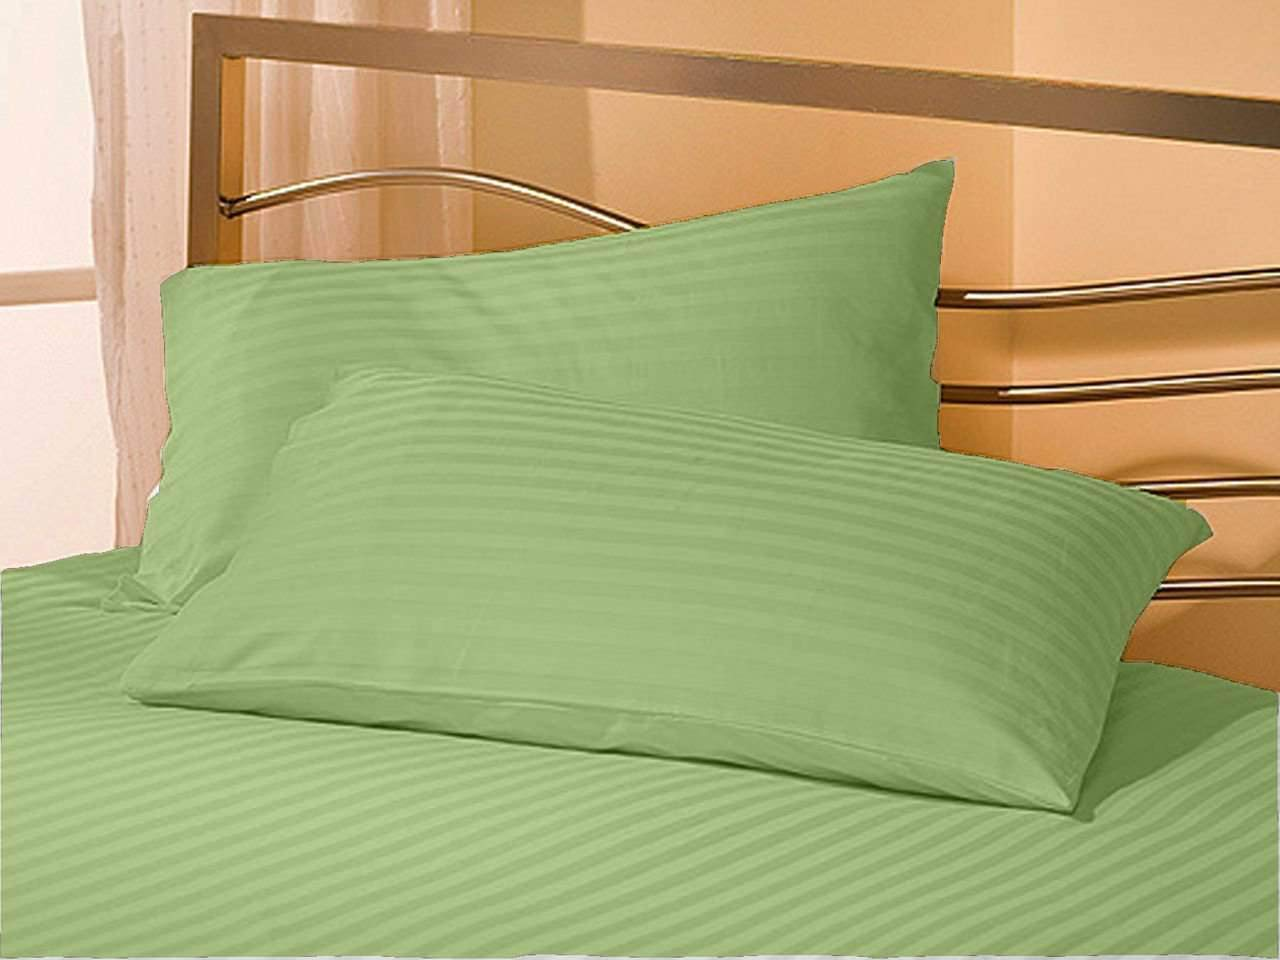 Cometa 6 PC Bedding Sheet Set - 1Flat Sheet, 1Fitted Sheet & 4Pillowcase - 400 Thread Count - 12 Inch Deep Pocket - 100% Pure Cotton Breathable & Wrinkle Free - Full-XXL, Sage Stripe